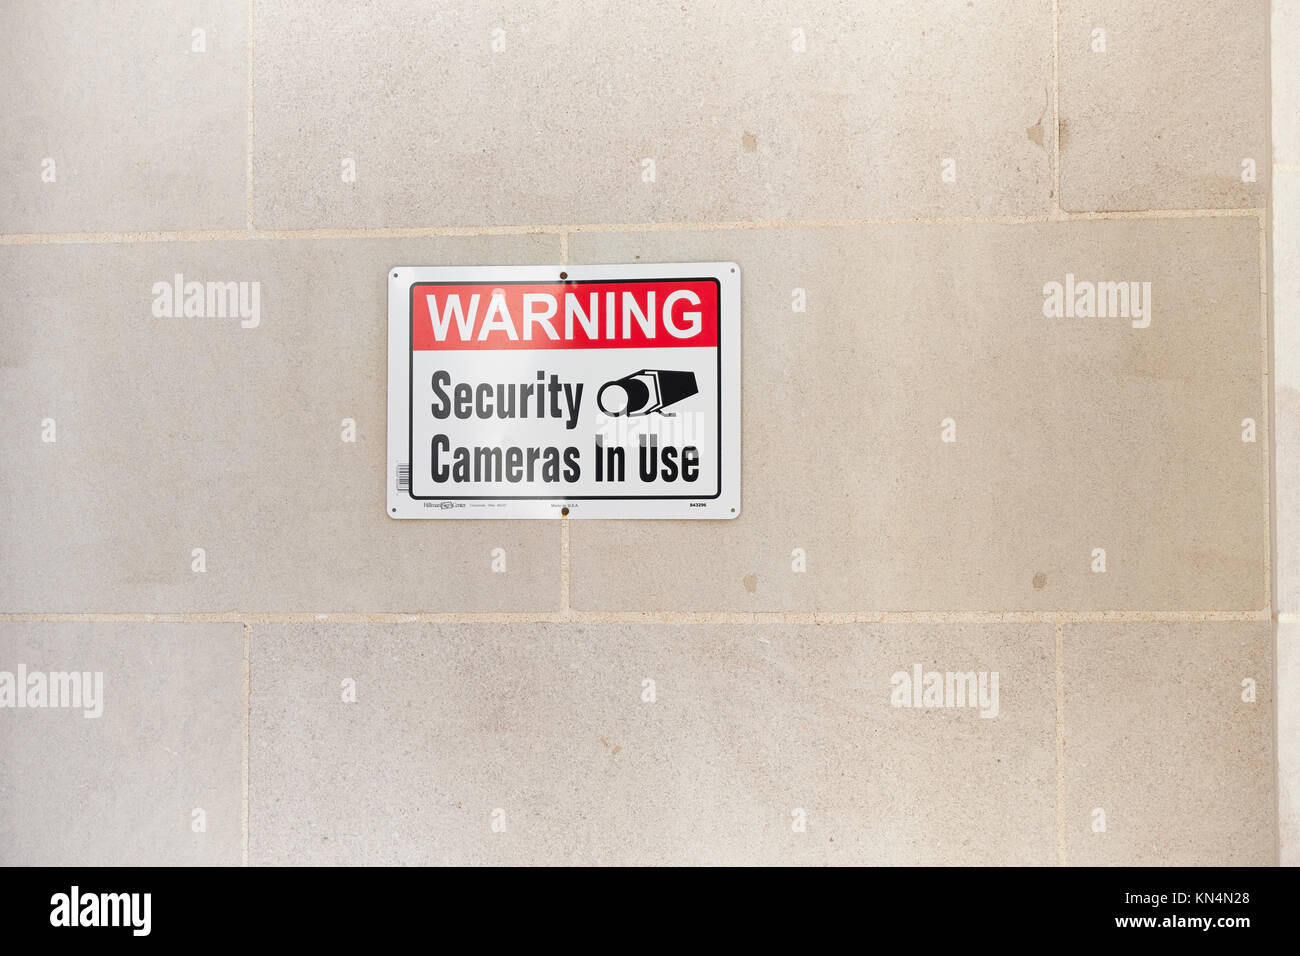 Warning sign at entrance to a United States bank advising security camera and cameras are in use for surveillance - Stock Image